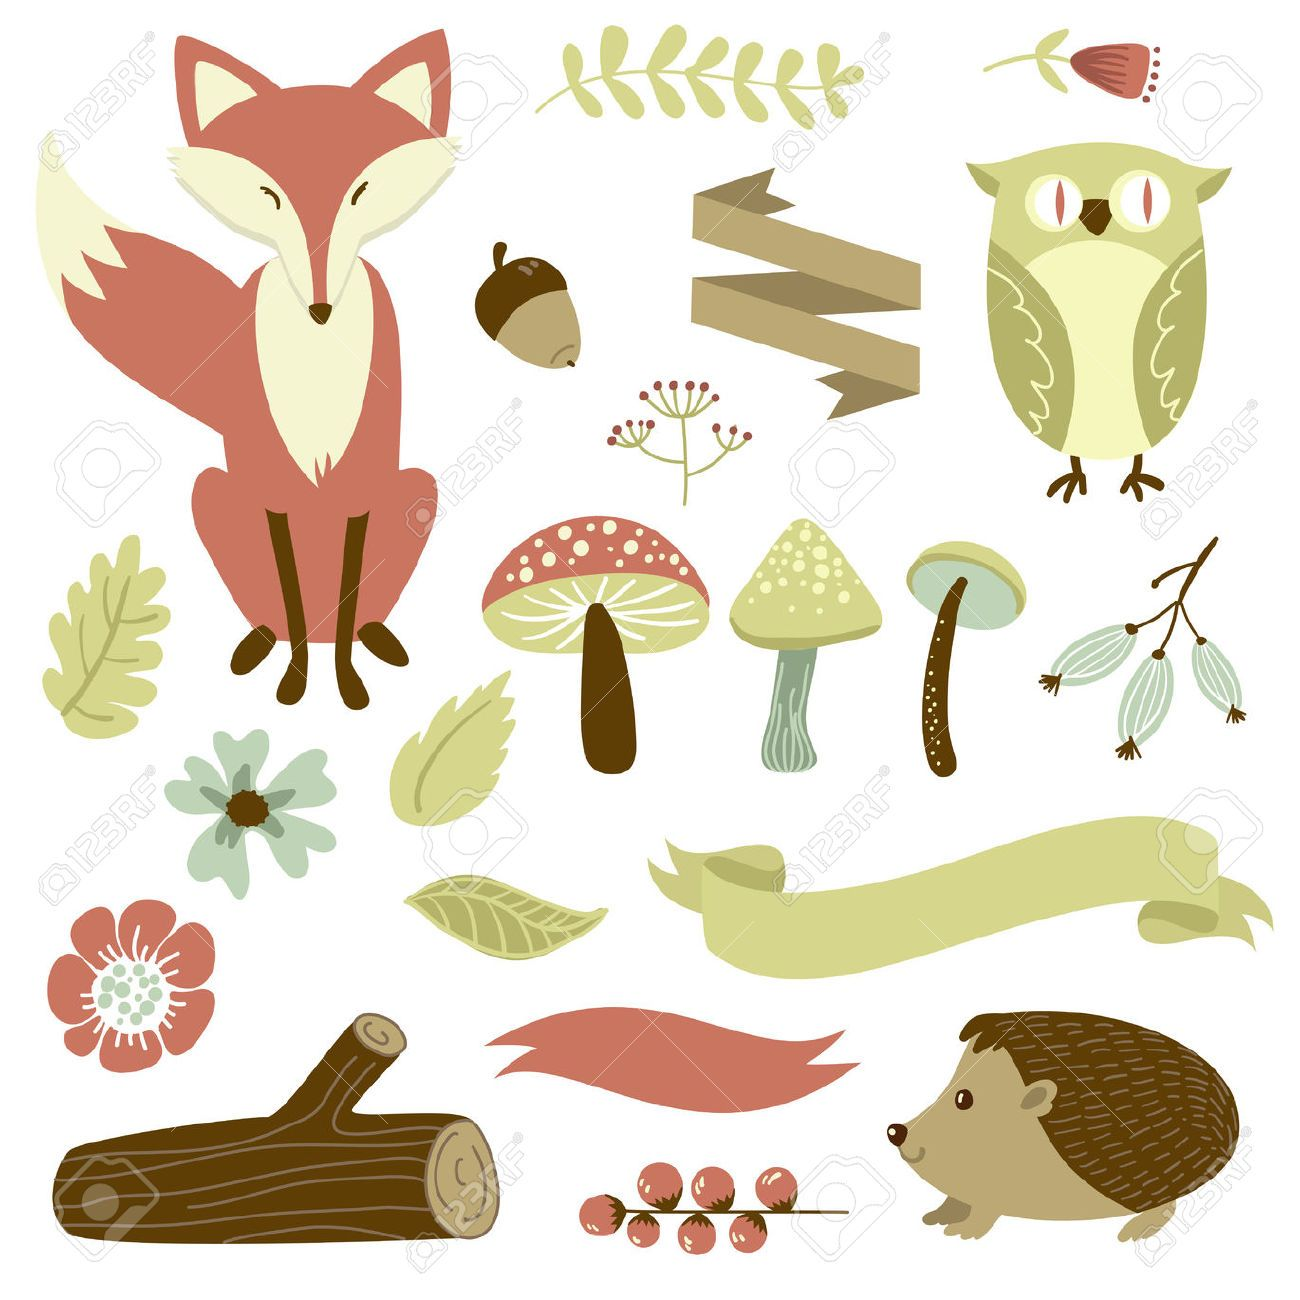 graphic about Free Printable Forest Animal Silhouettes known as no cost printable forest animal silhouettes - Google Look